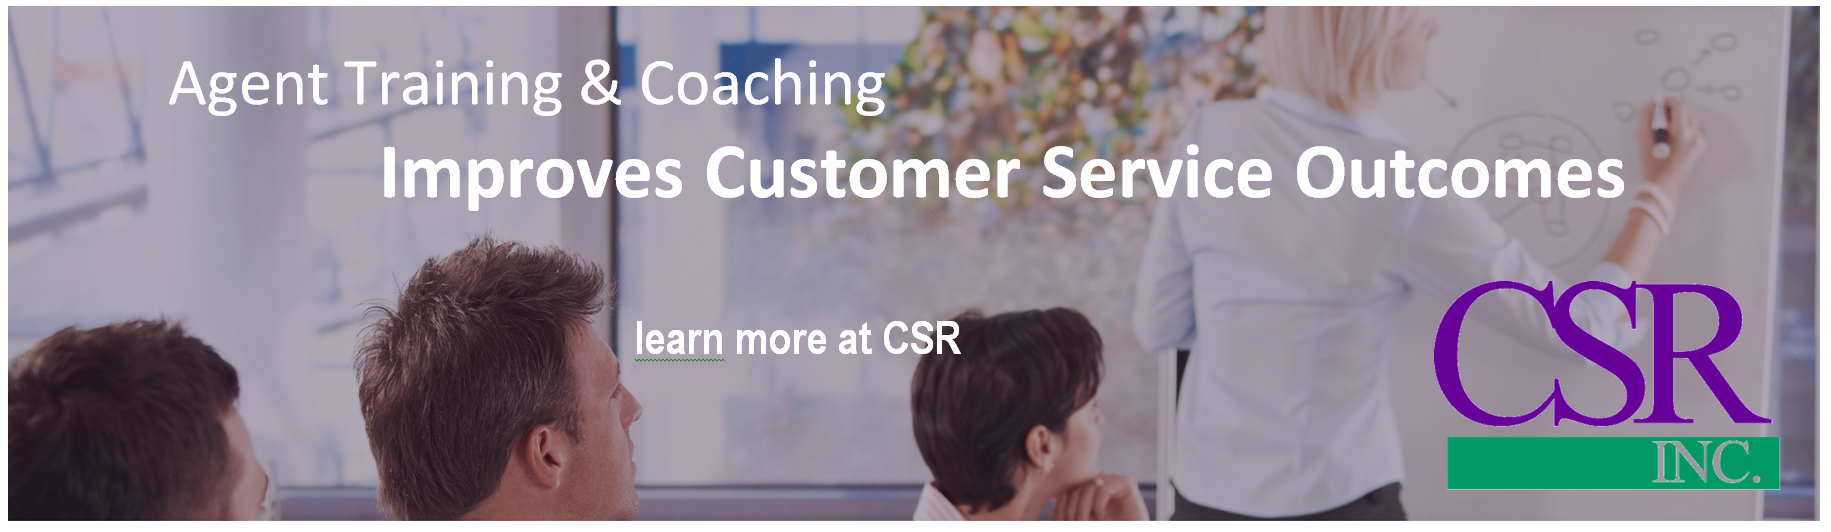 CSR cctr training.png